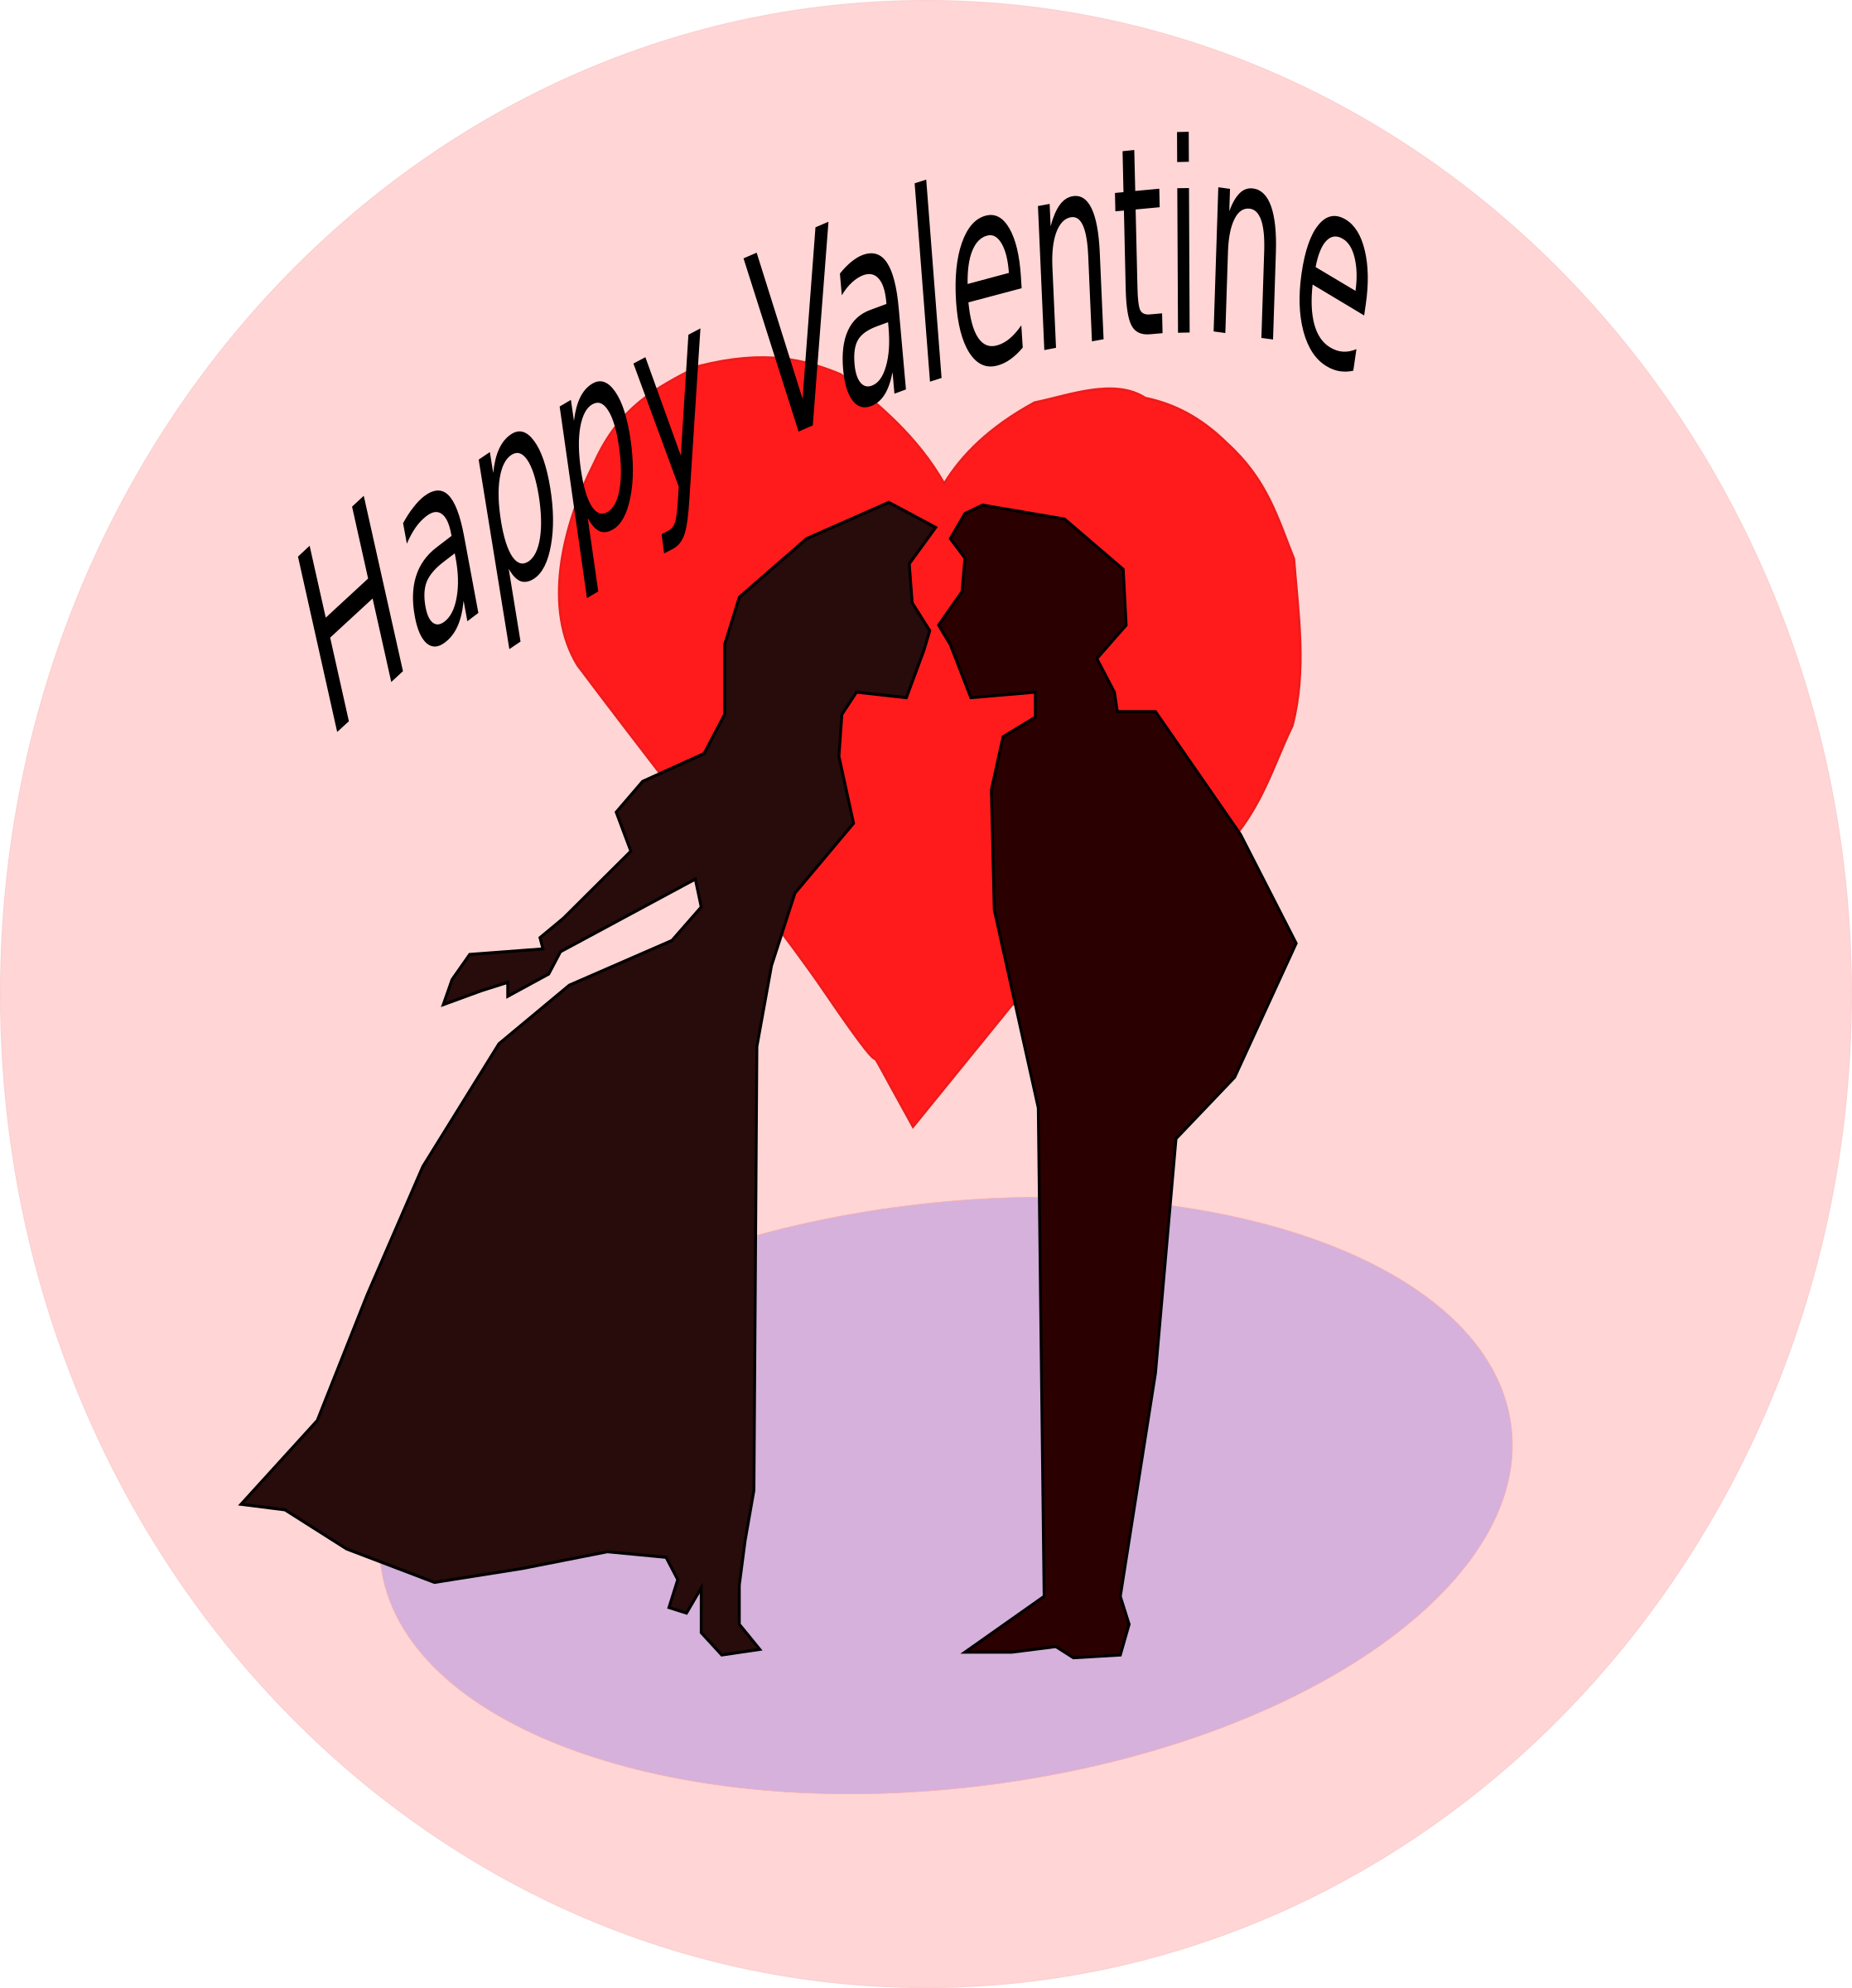 animated valentines day png transparent animated valentines day png rh pluspng com